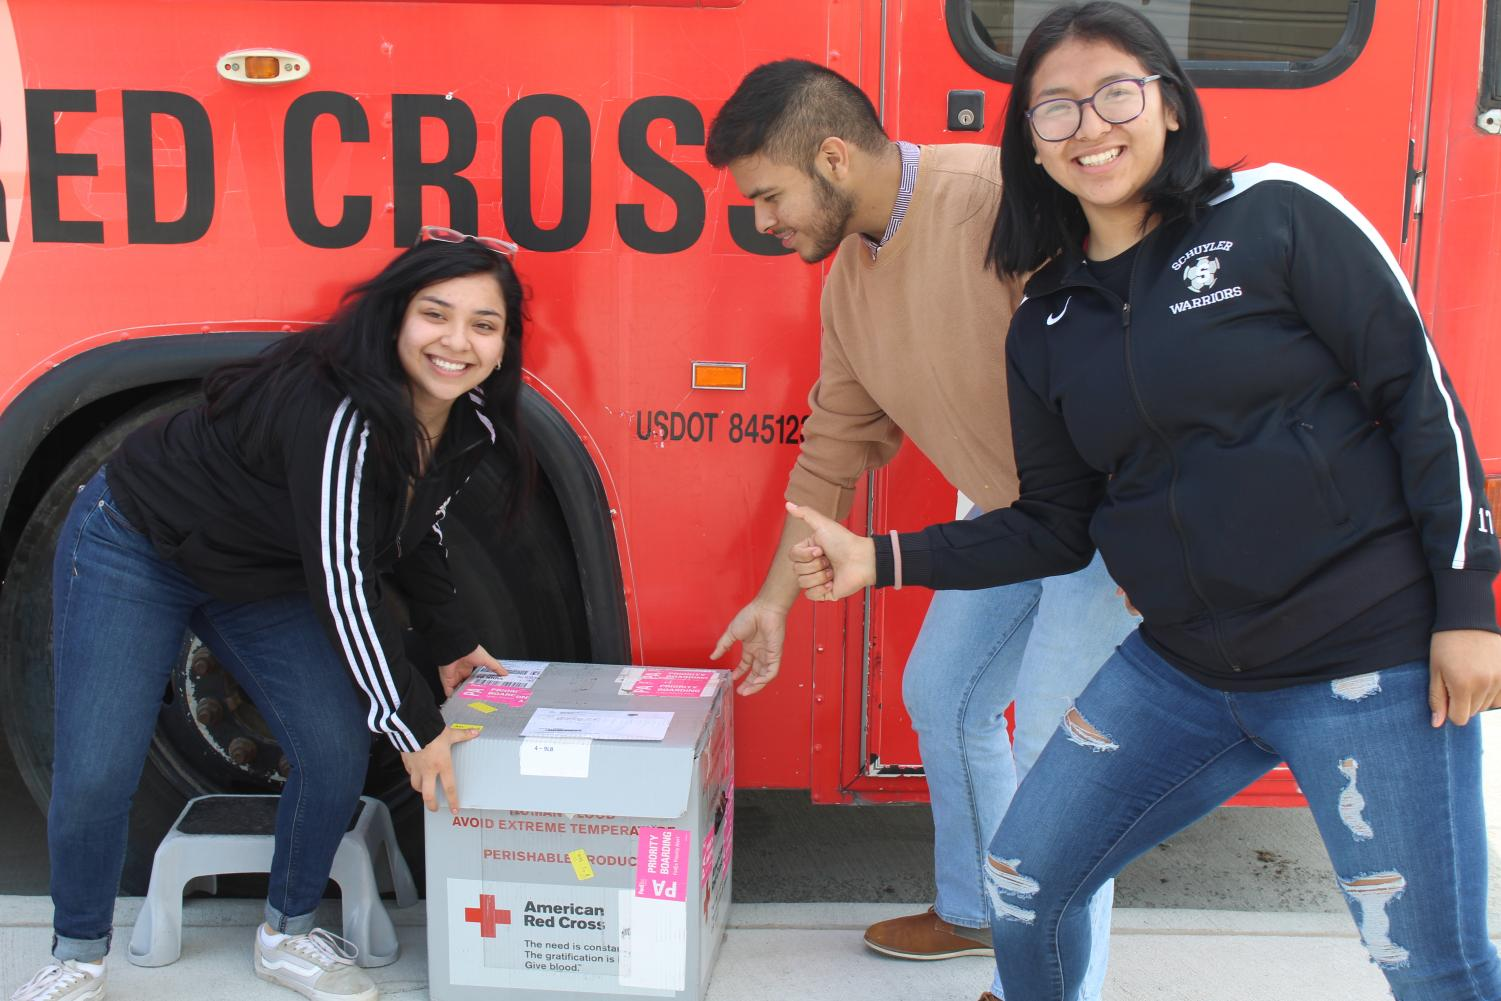 Students are getting prepared for the Spring Blood Drive